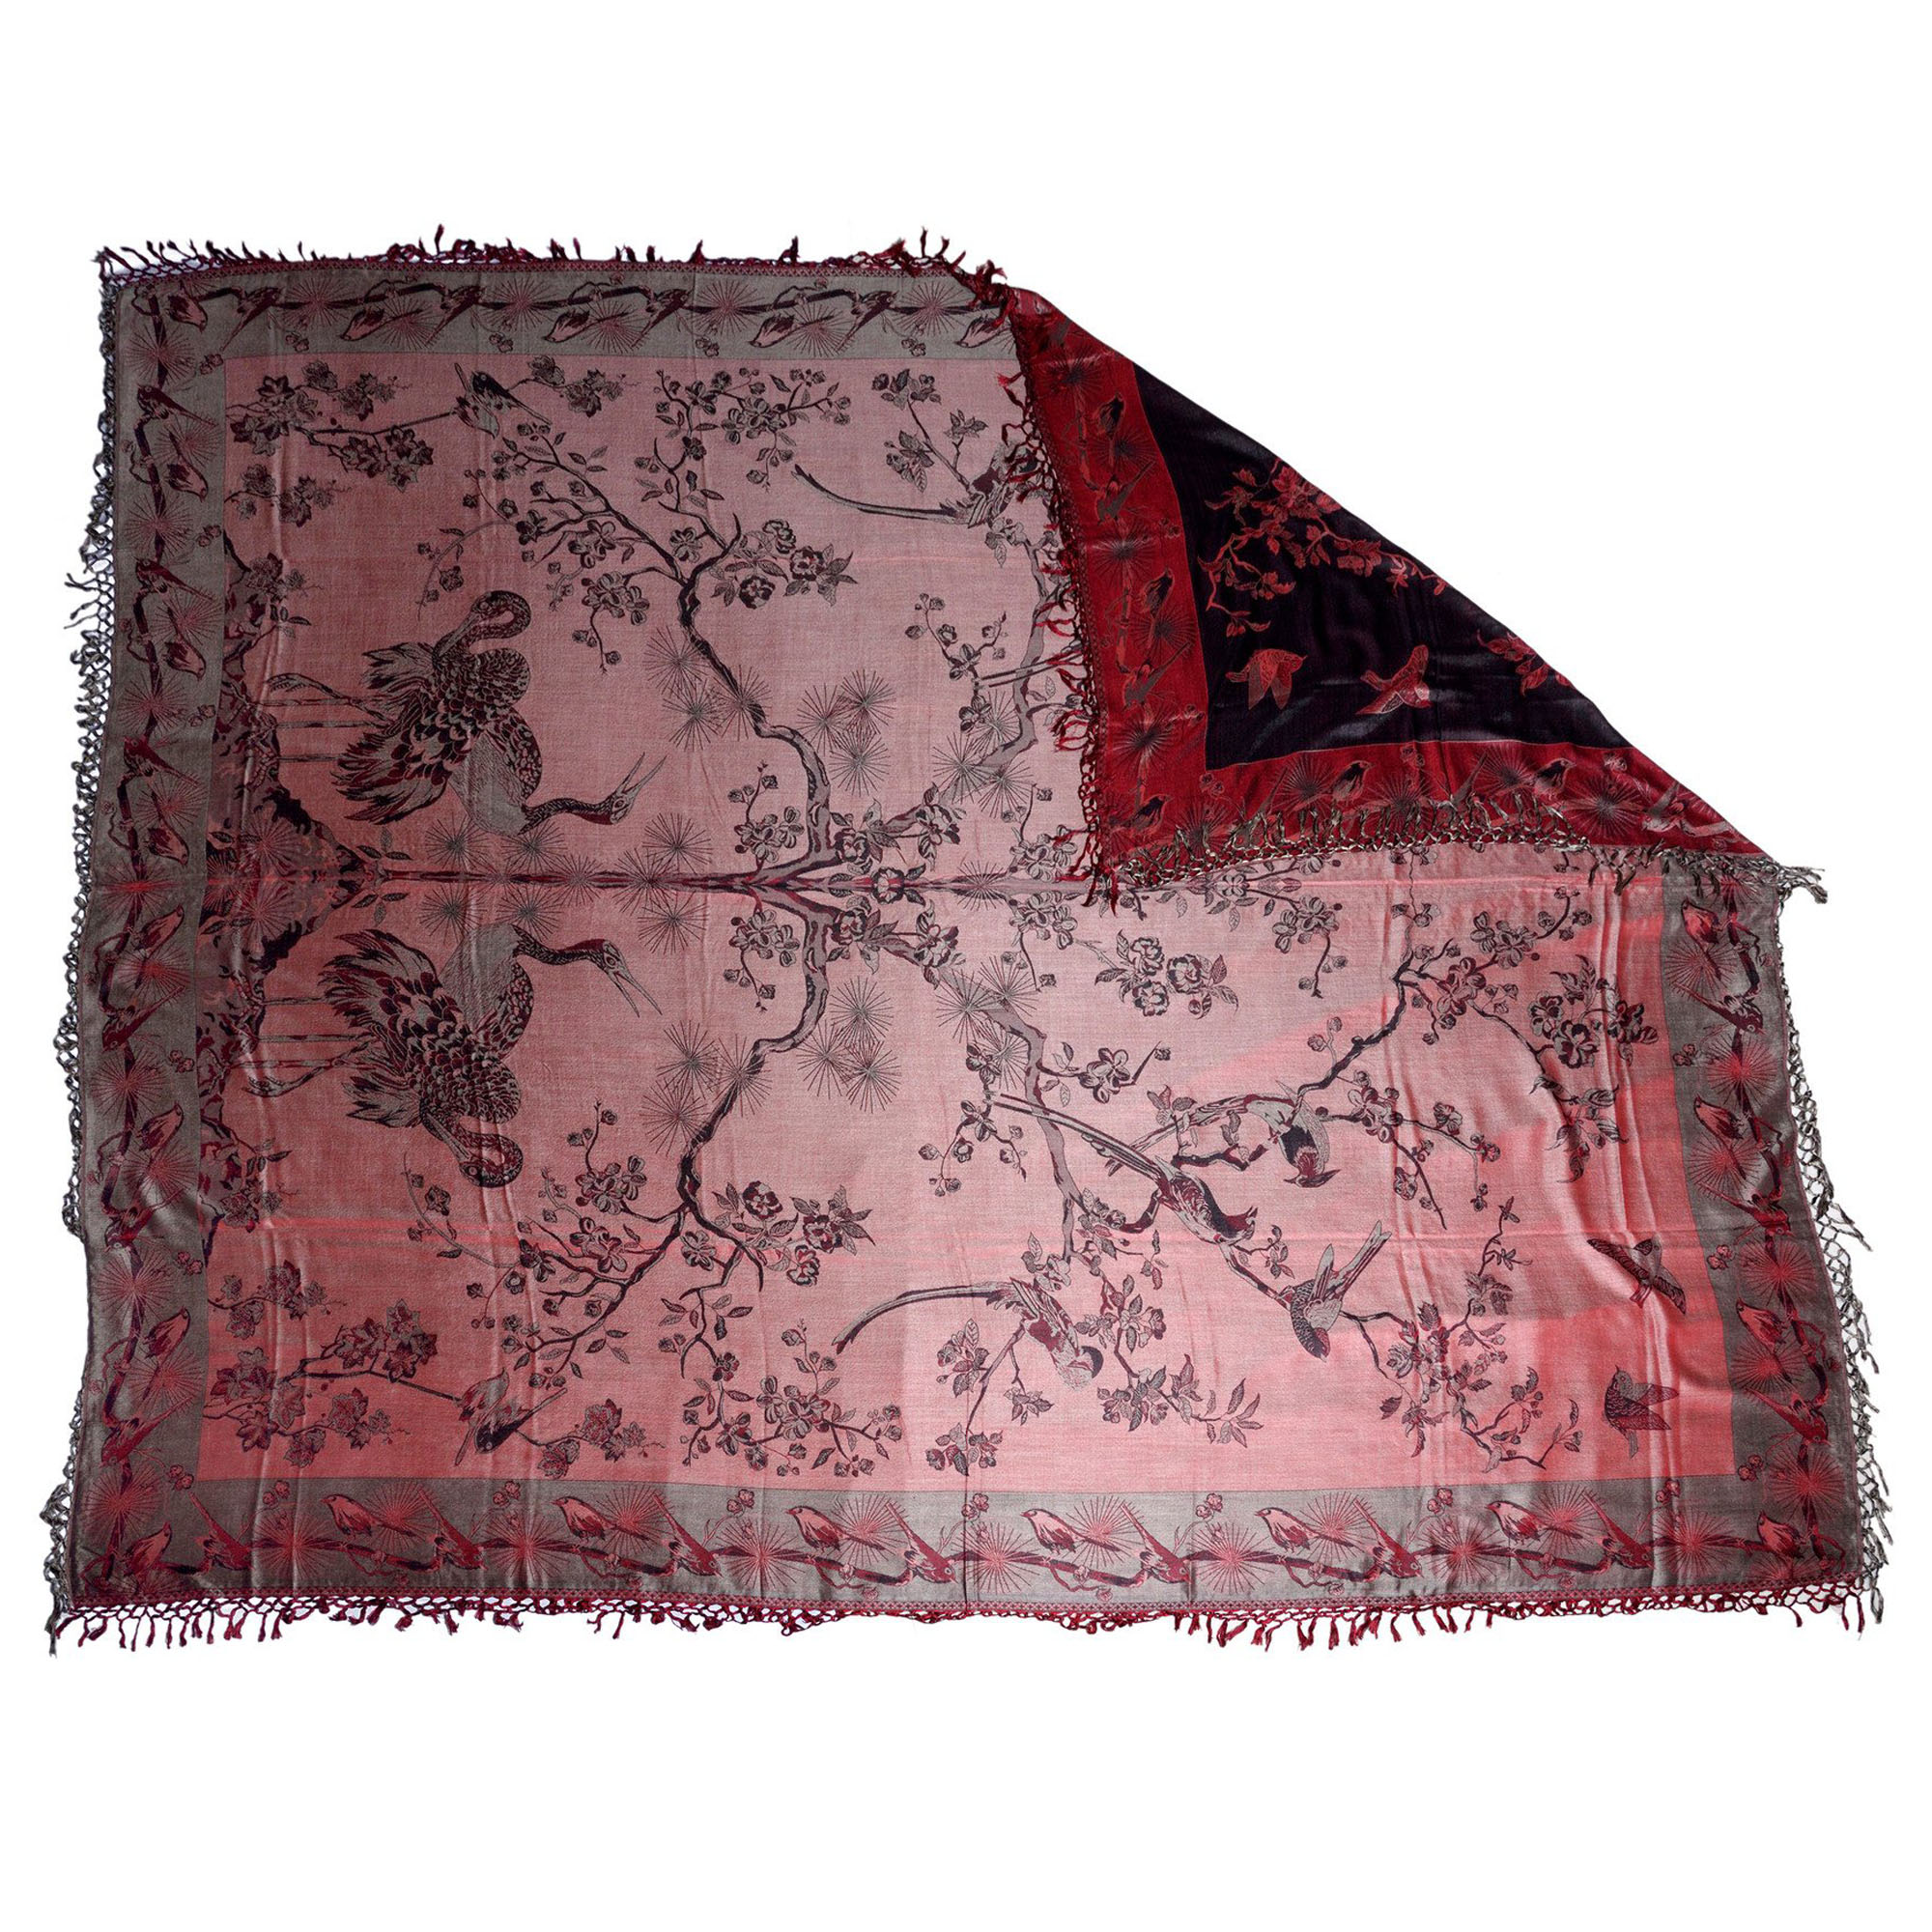 Banyan Red / Black Charming Silk Throw 3